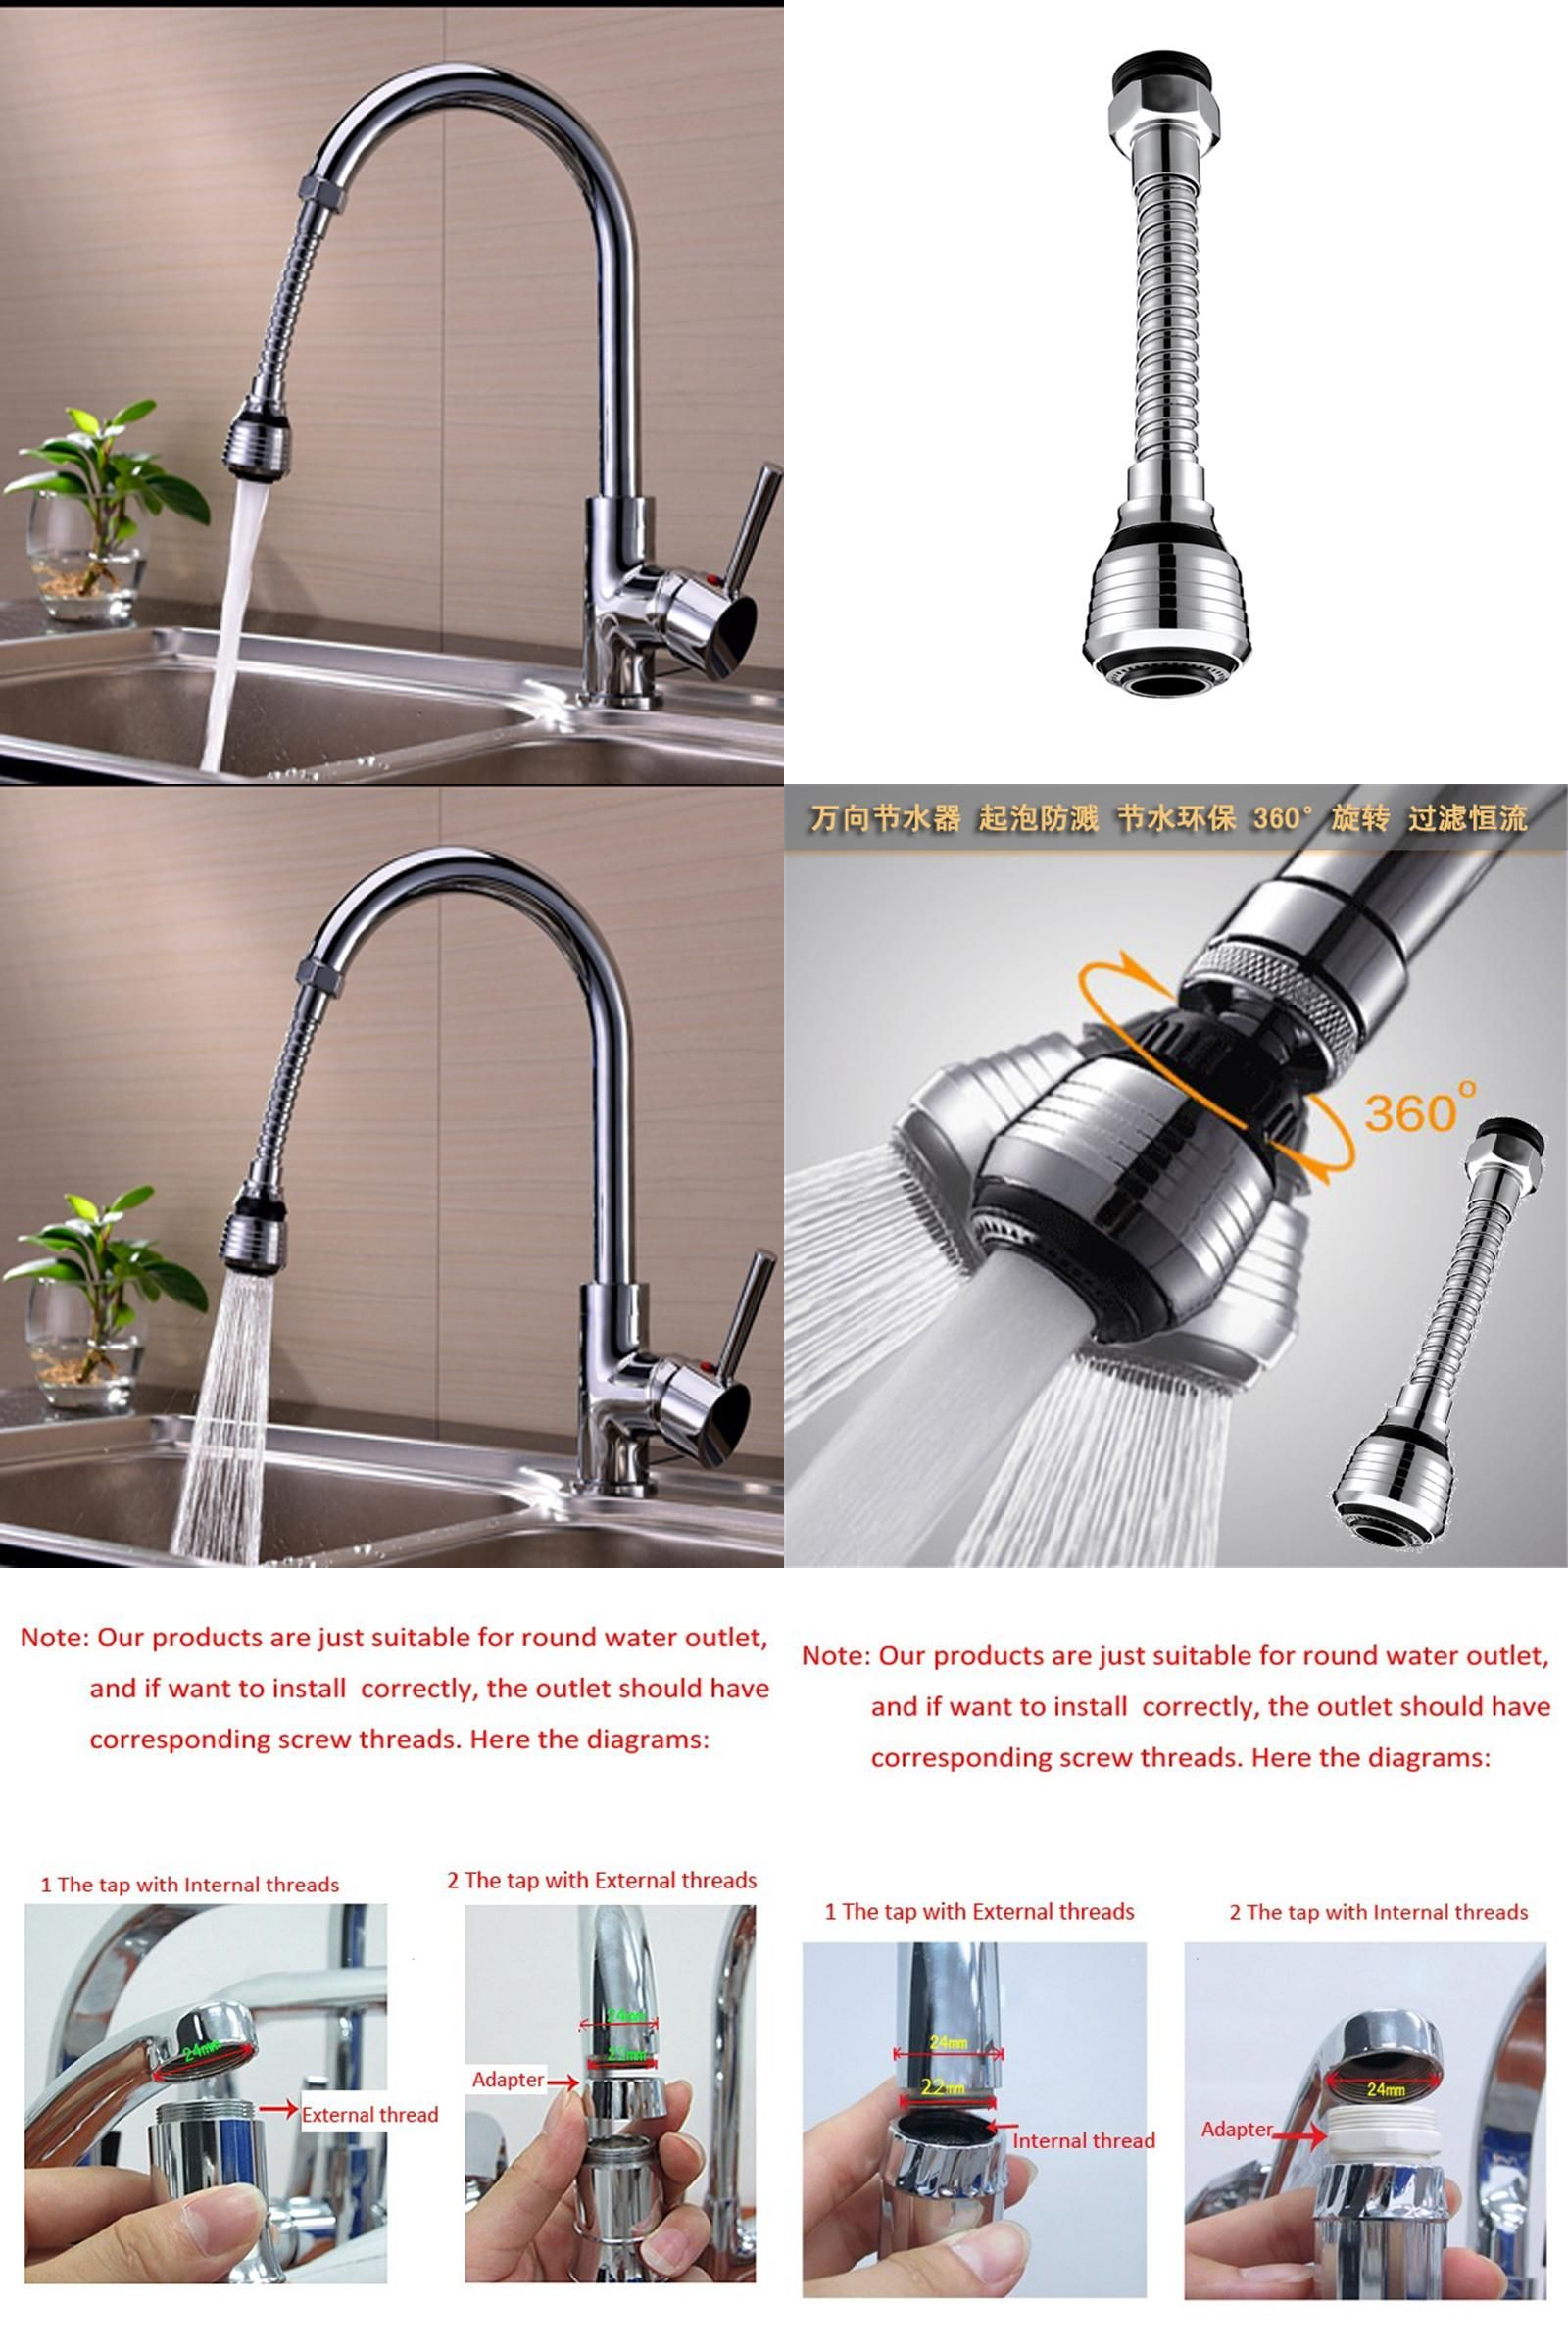 Visit to Buy] Faucet Aerator Sprayer Water Saving Device For Home ...